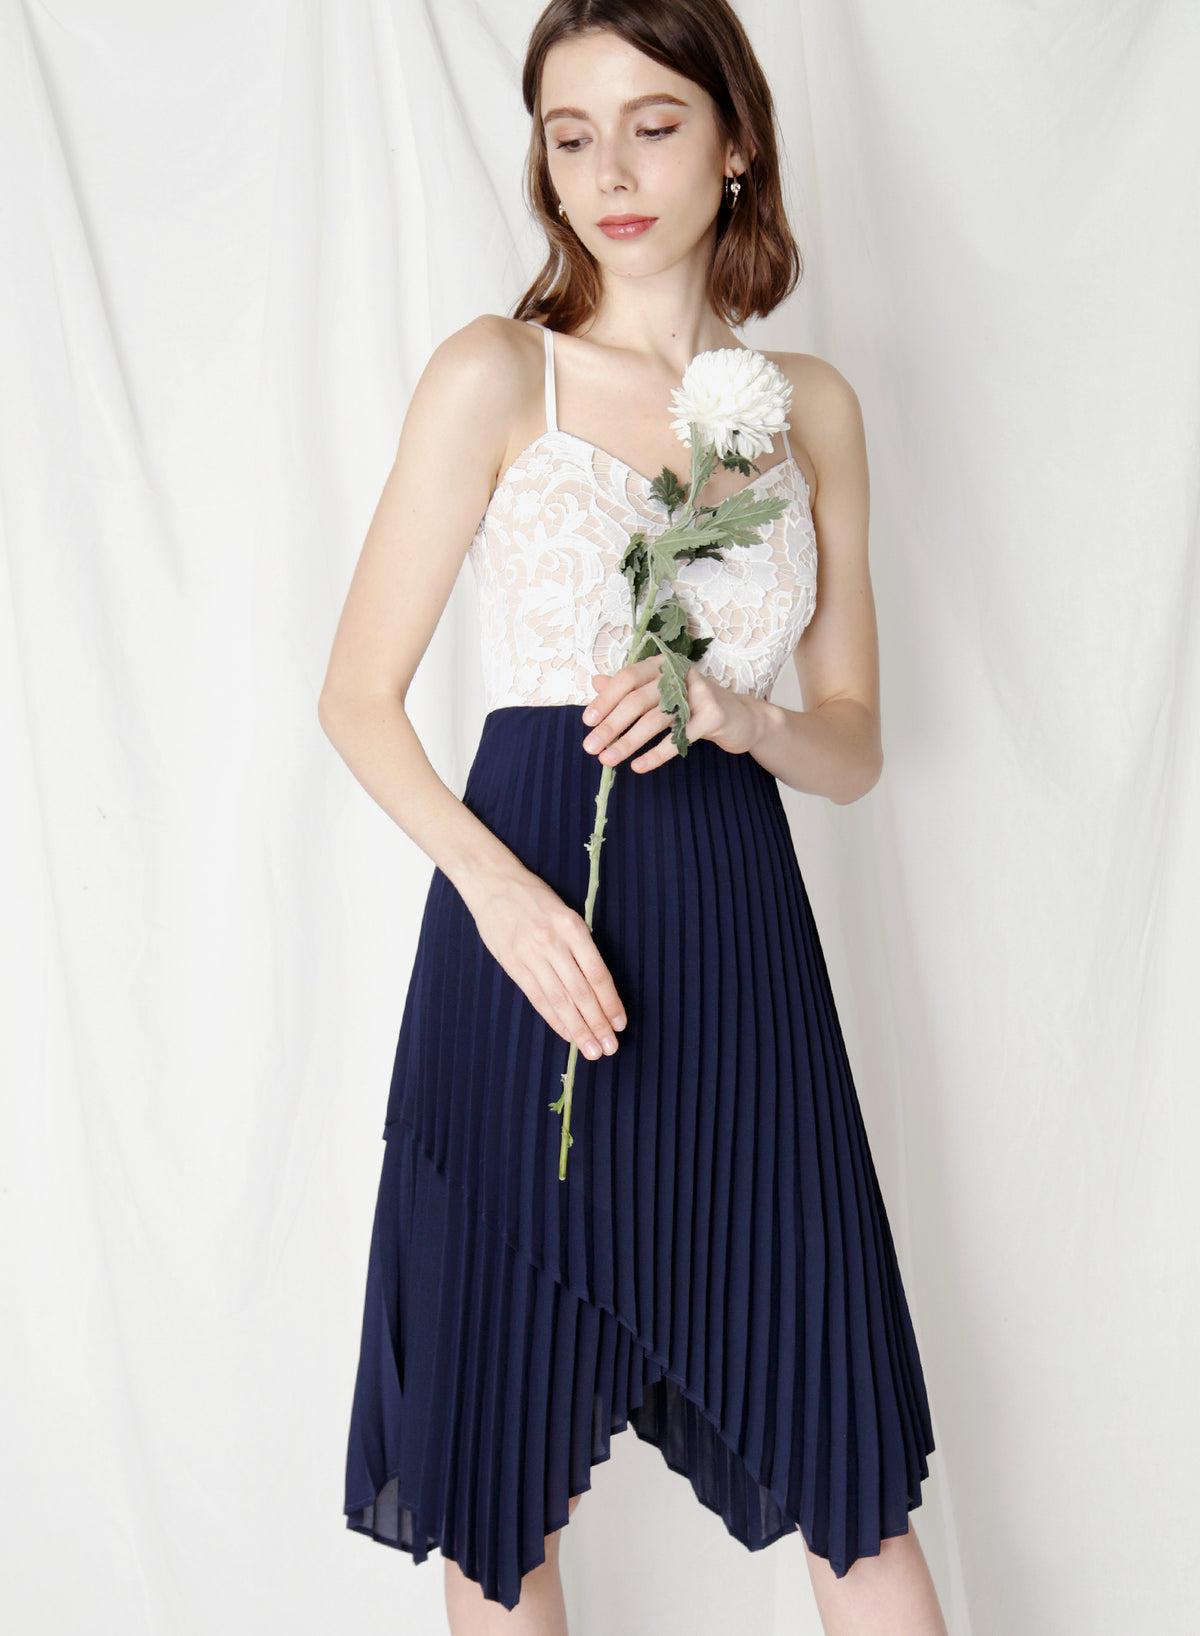 Finesse Uneven Pleats Dress (Navy) at $ 44.50 only sold at And Well Dressed Online Fashion Store Singapore